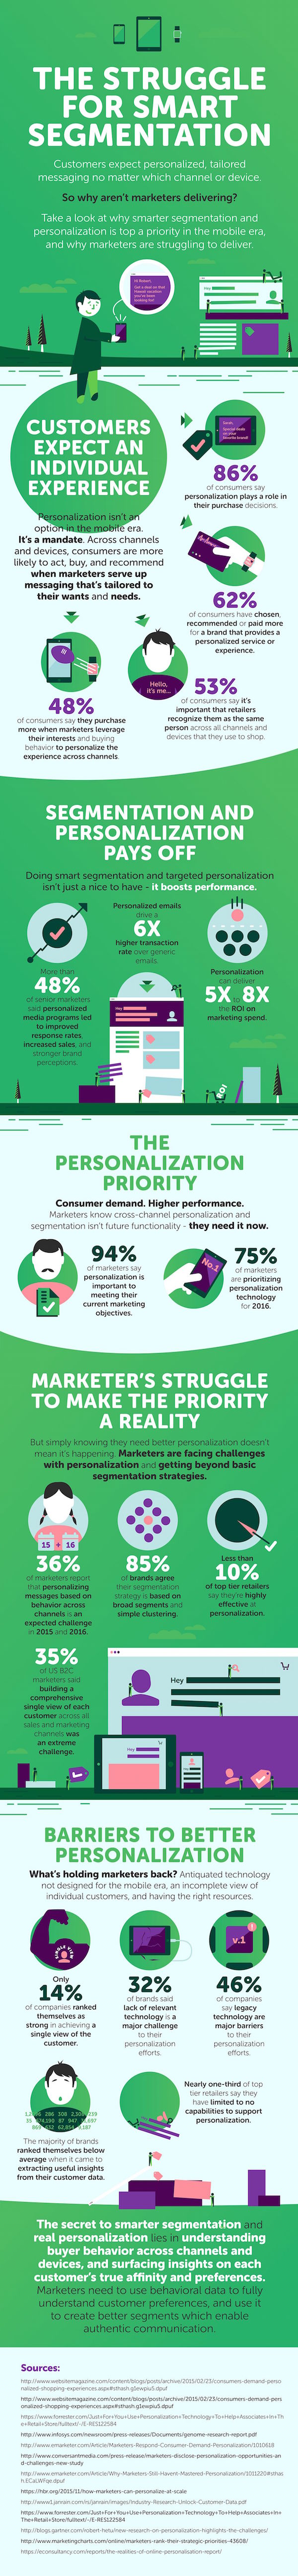 the-problems-with-personalization-in-marketing-doc.jpg